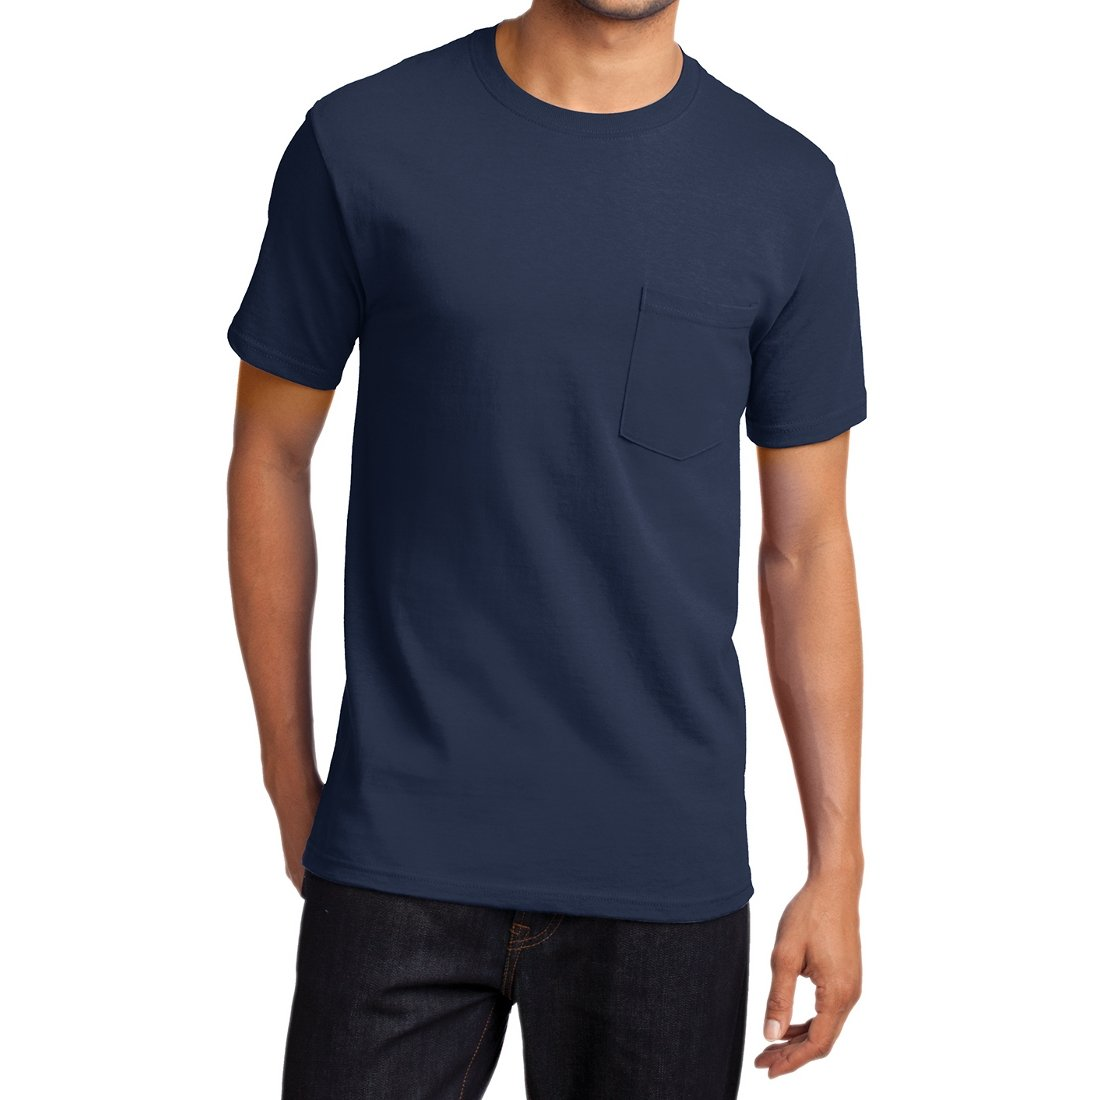 Men's Essential T Shirt with Pocket Navy